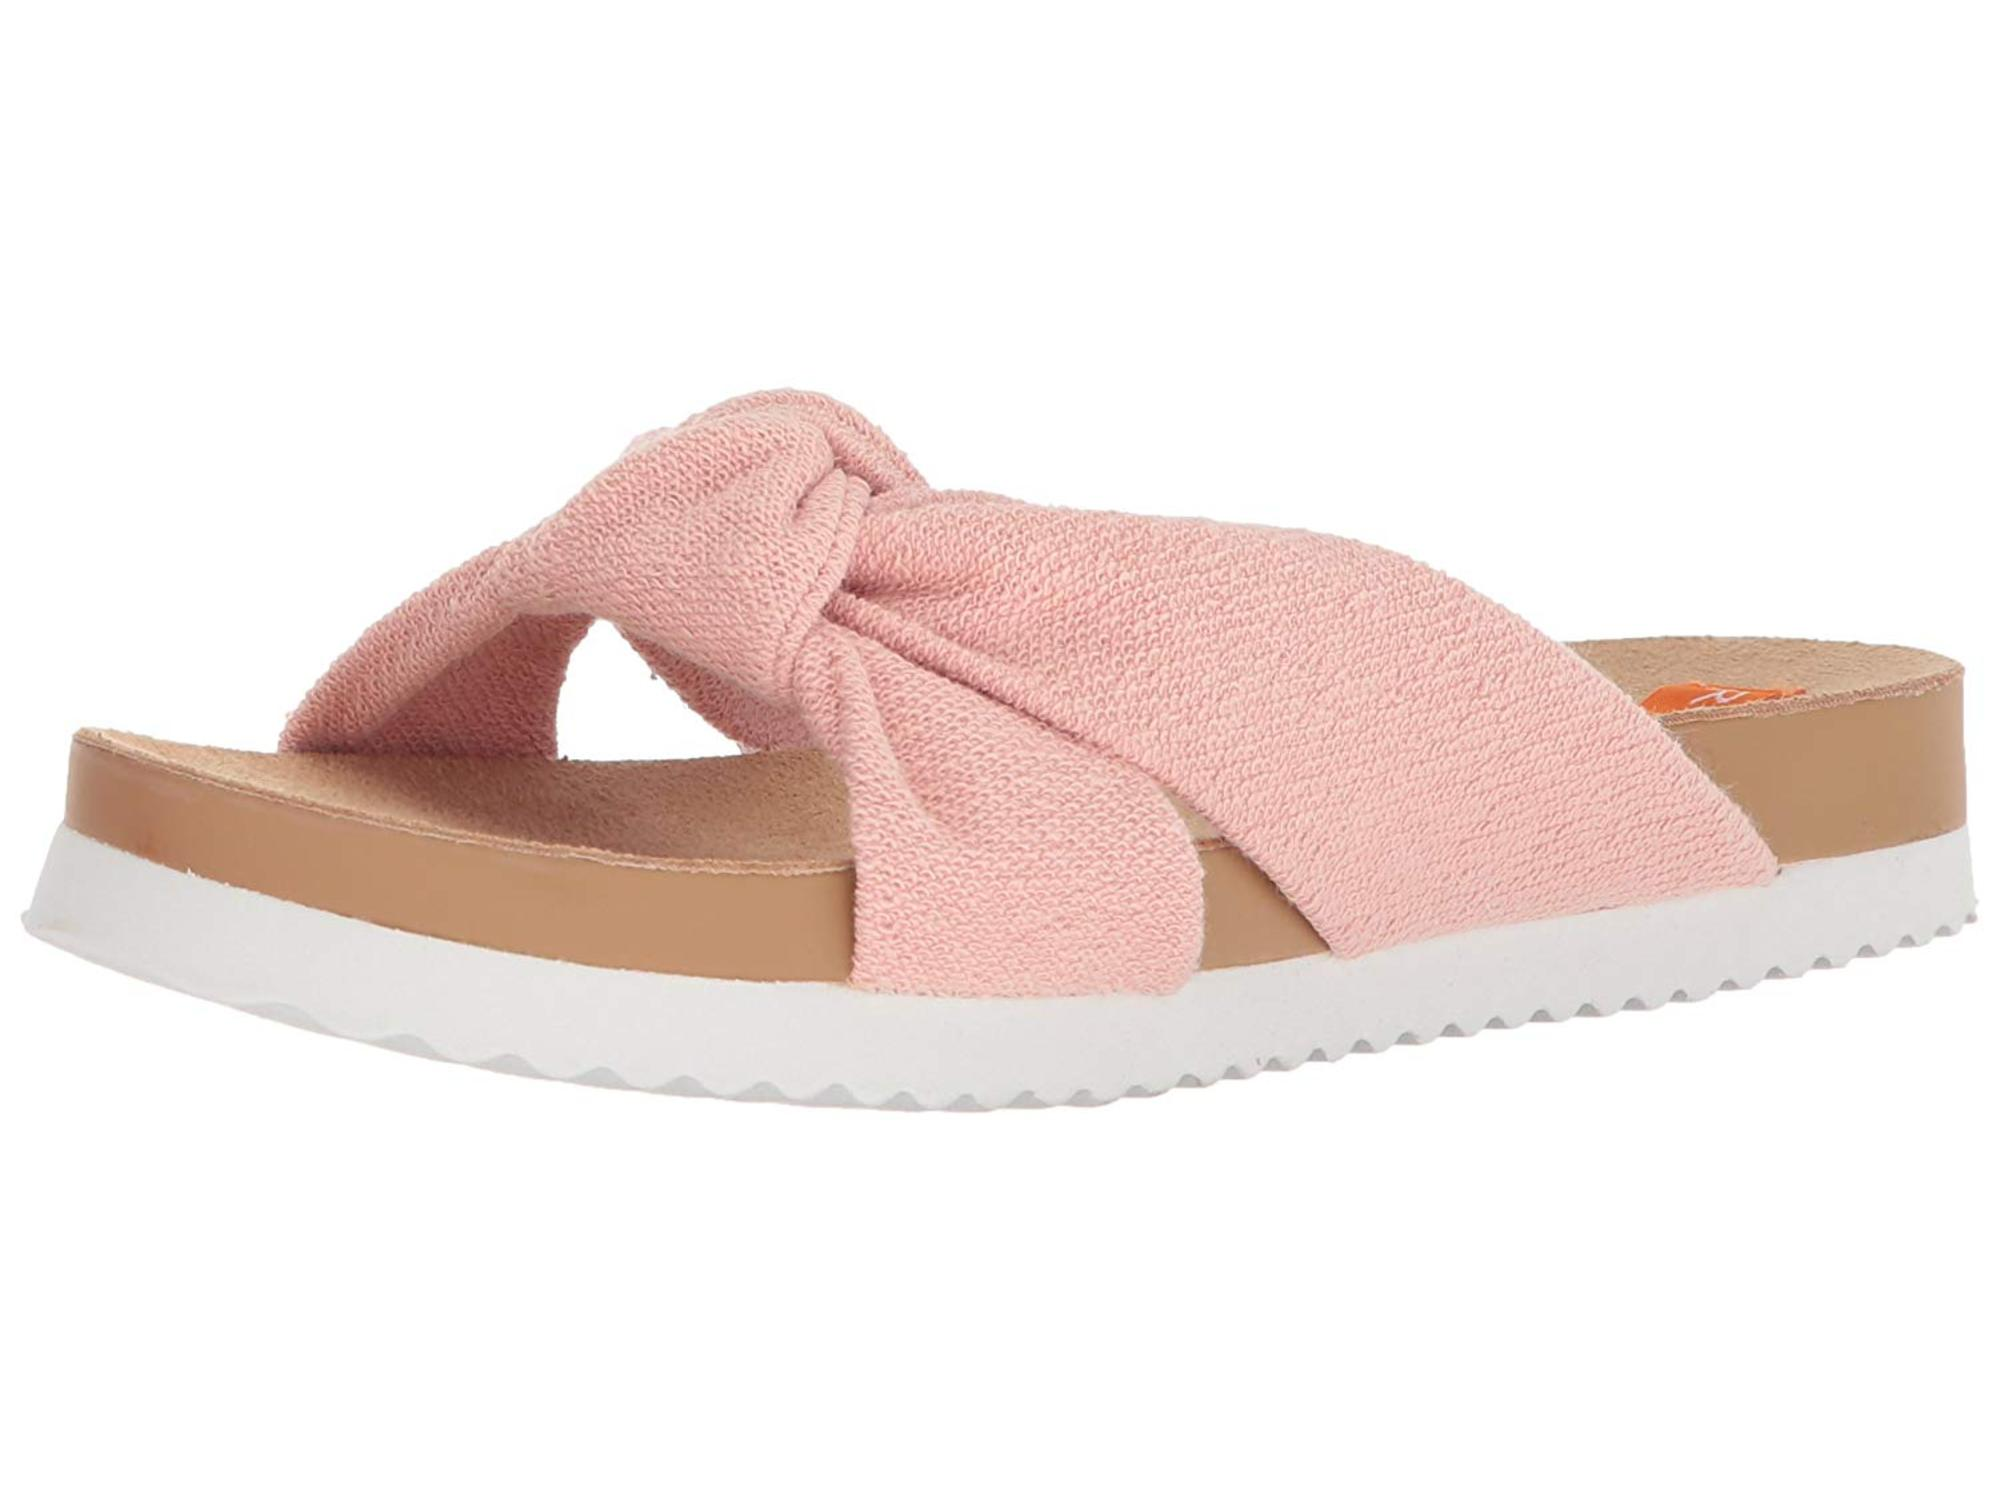 4bee7991f1f Rocket Dog Women s Loving Cloud 9 Cotton Slide Sandal